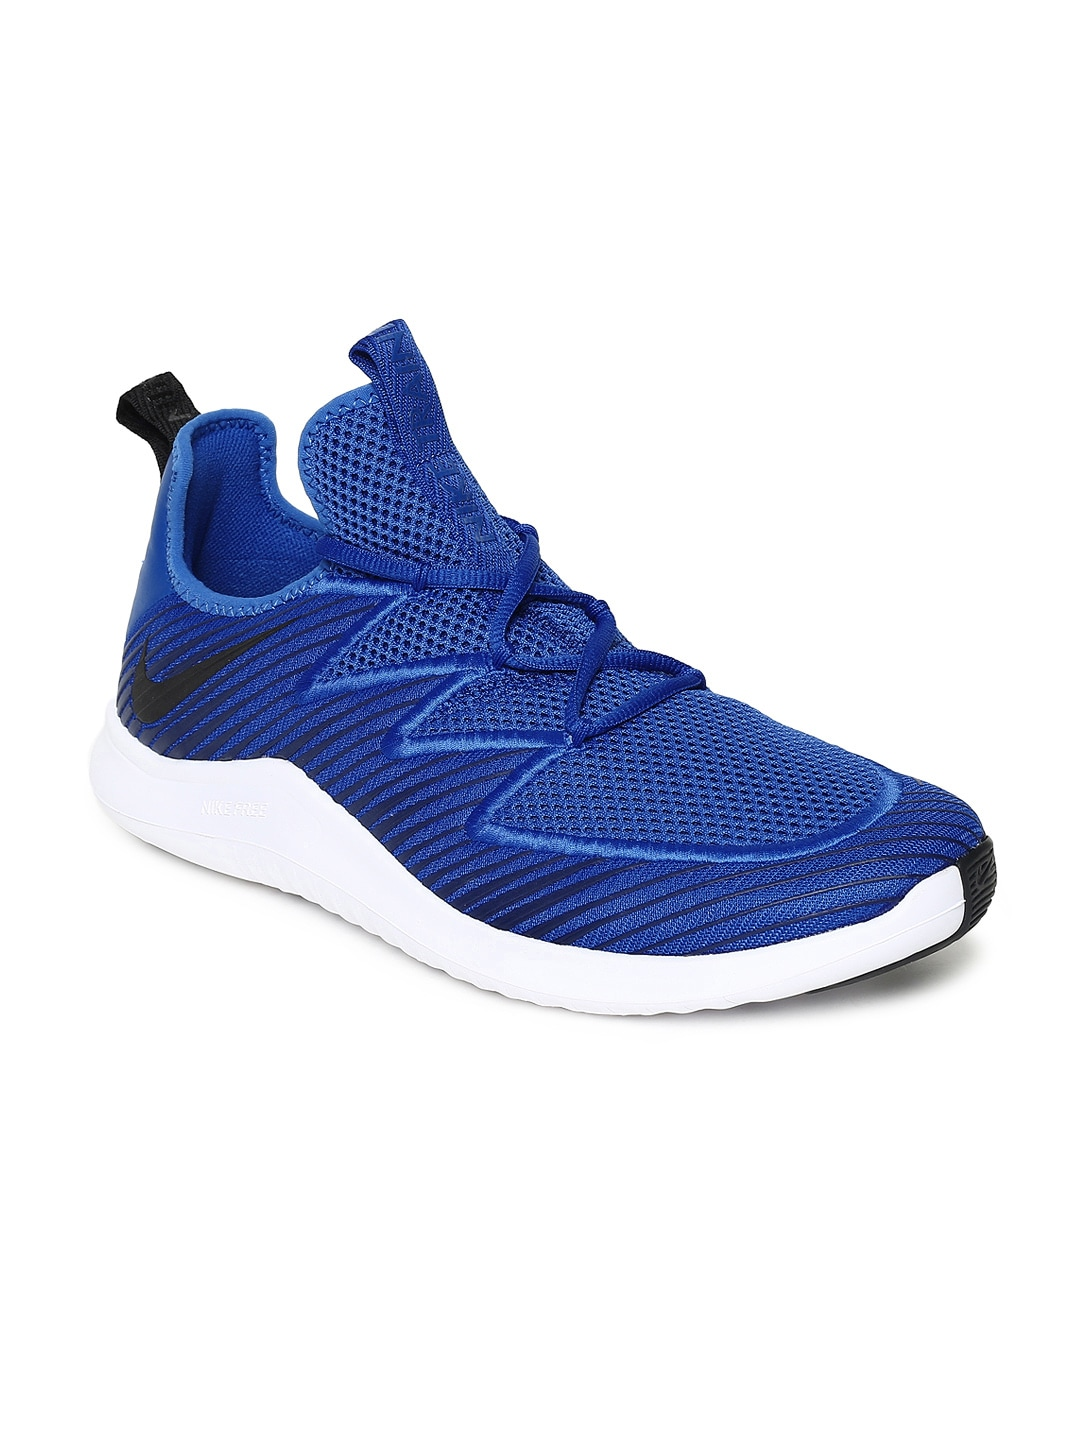 cheap for discount e3f45 ce730 Nike Training Shoes - Buy Nike Training Shoes For Men   Women in India